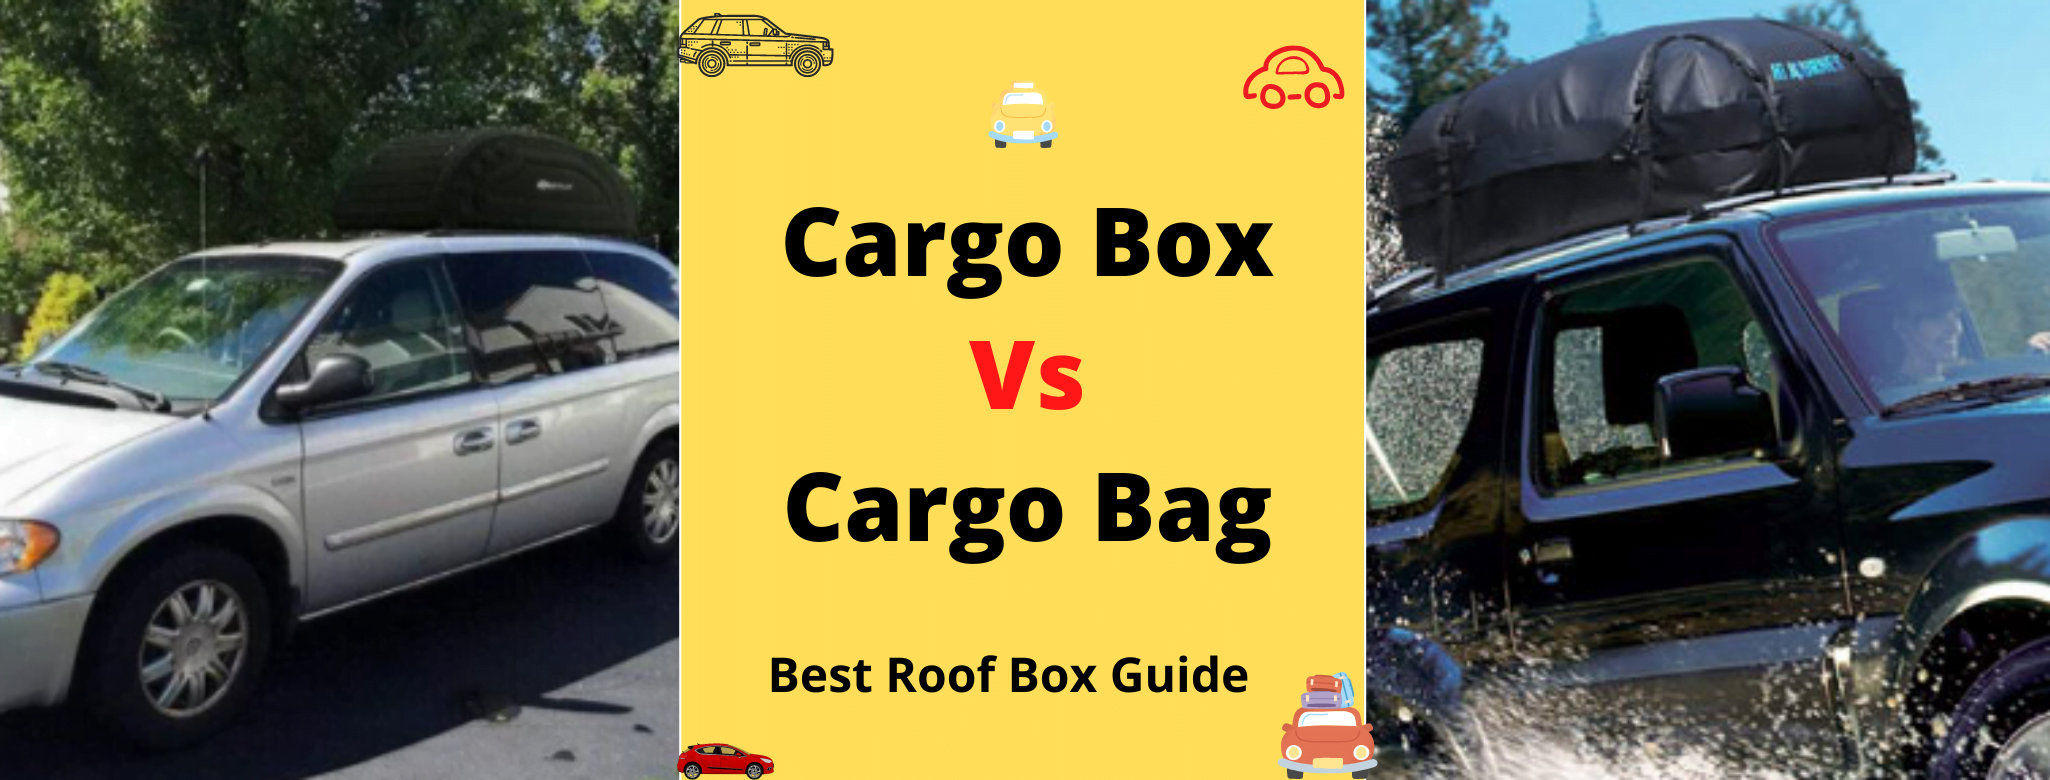 🚚 Cargo Box Vs Cargo Bag : All You Need To Know In 2021 ⚠️